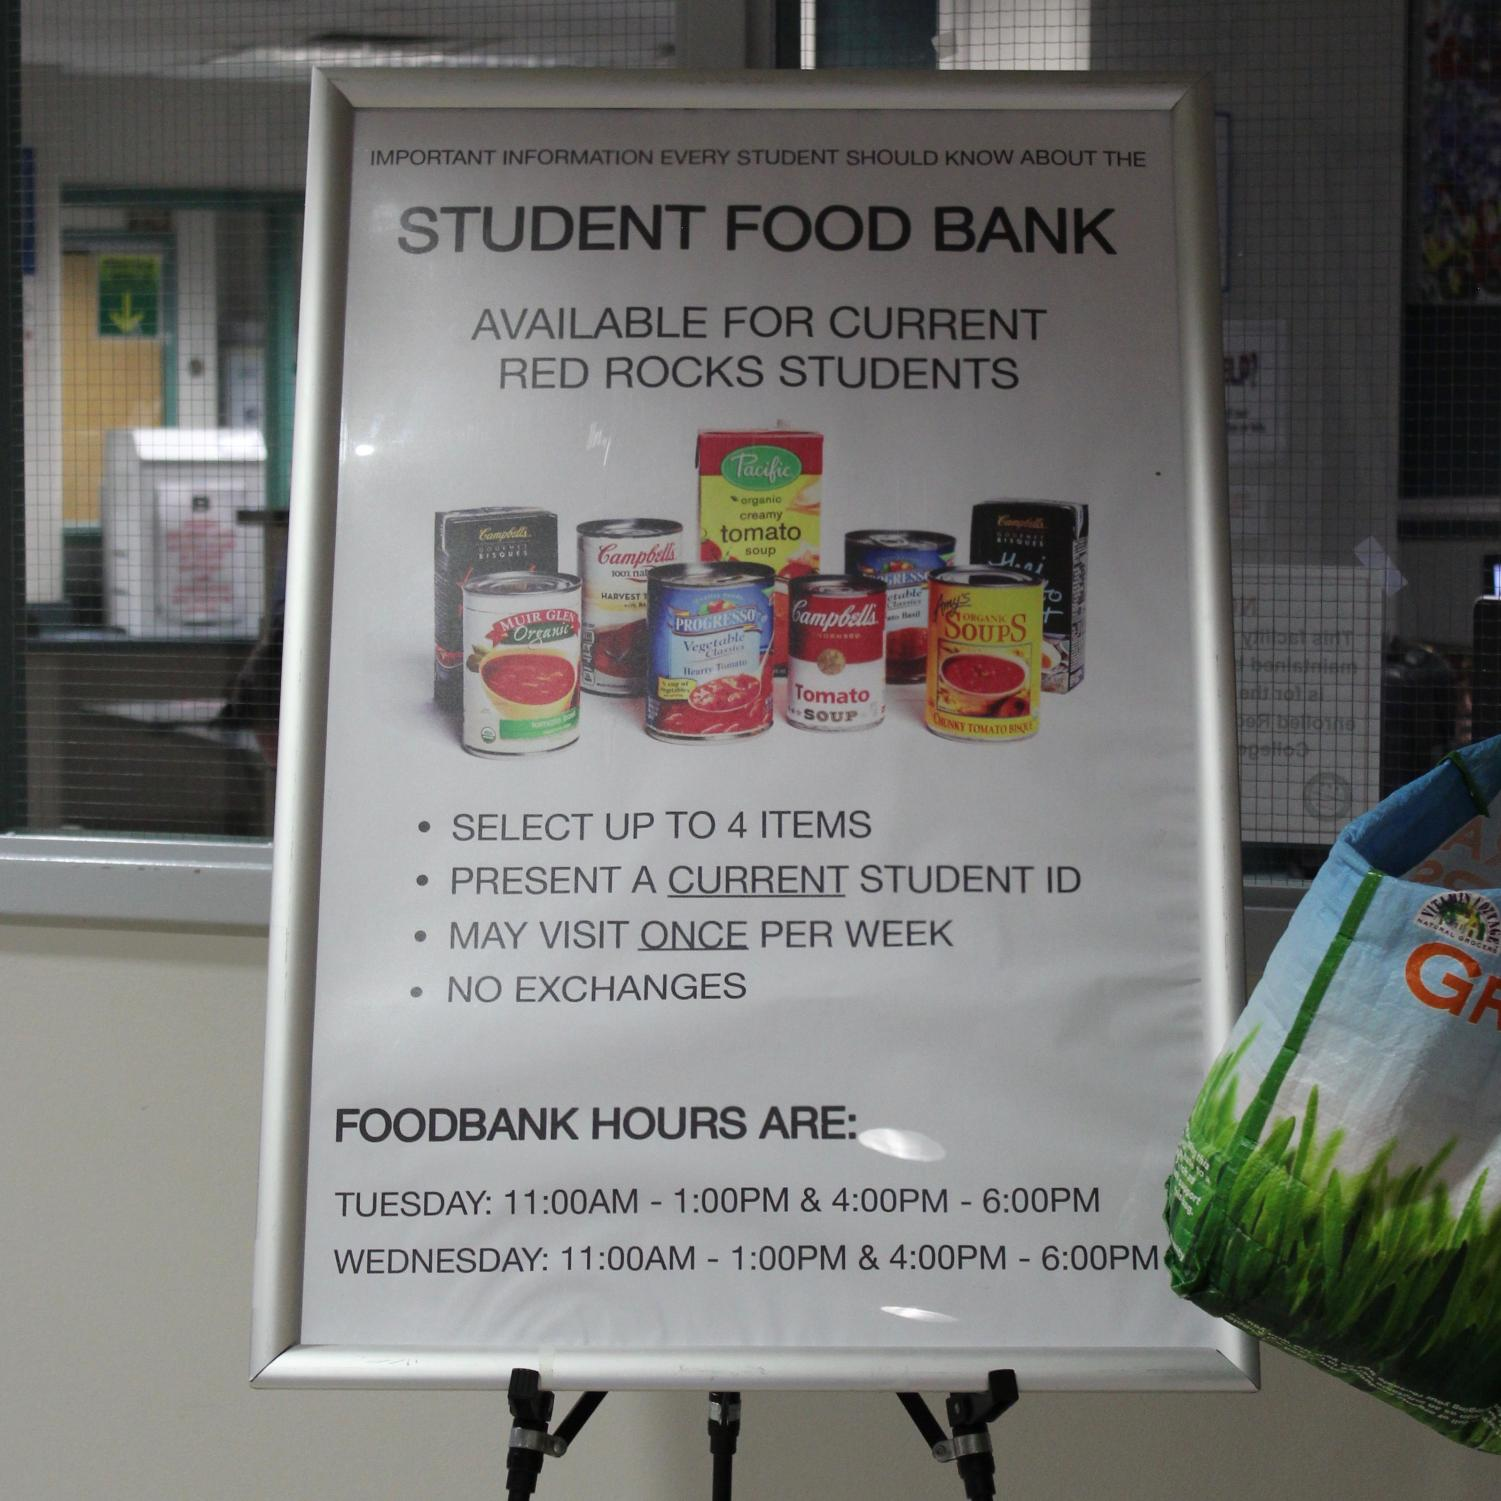 A sign informs students of the food bank's rules and hours at Red Rocks Community College in Lakewood, Colo., April 18, 2018. Food banks are one way colleges can fight food insecurity on their campuses.